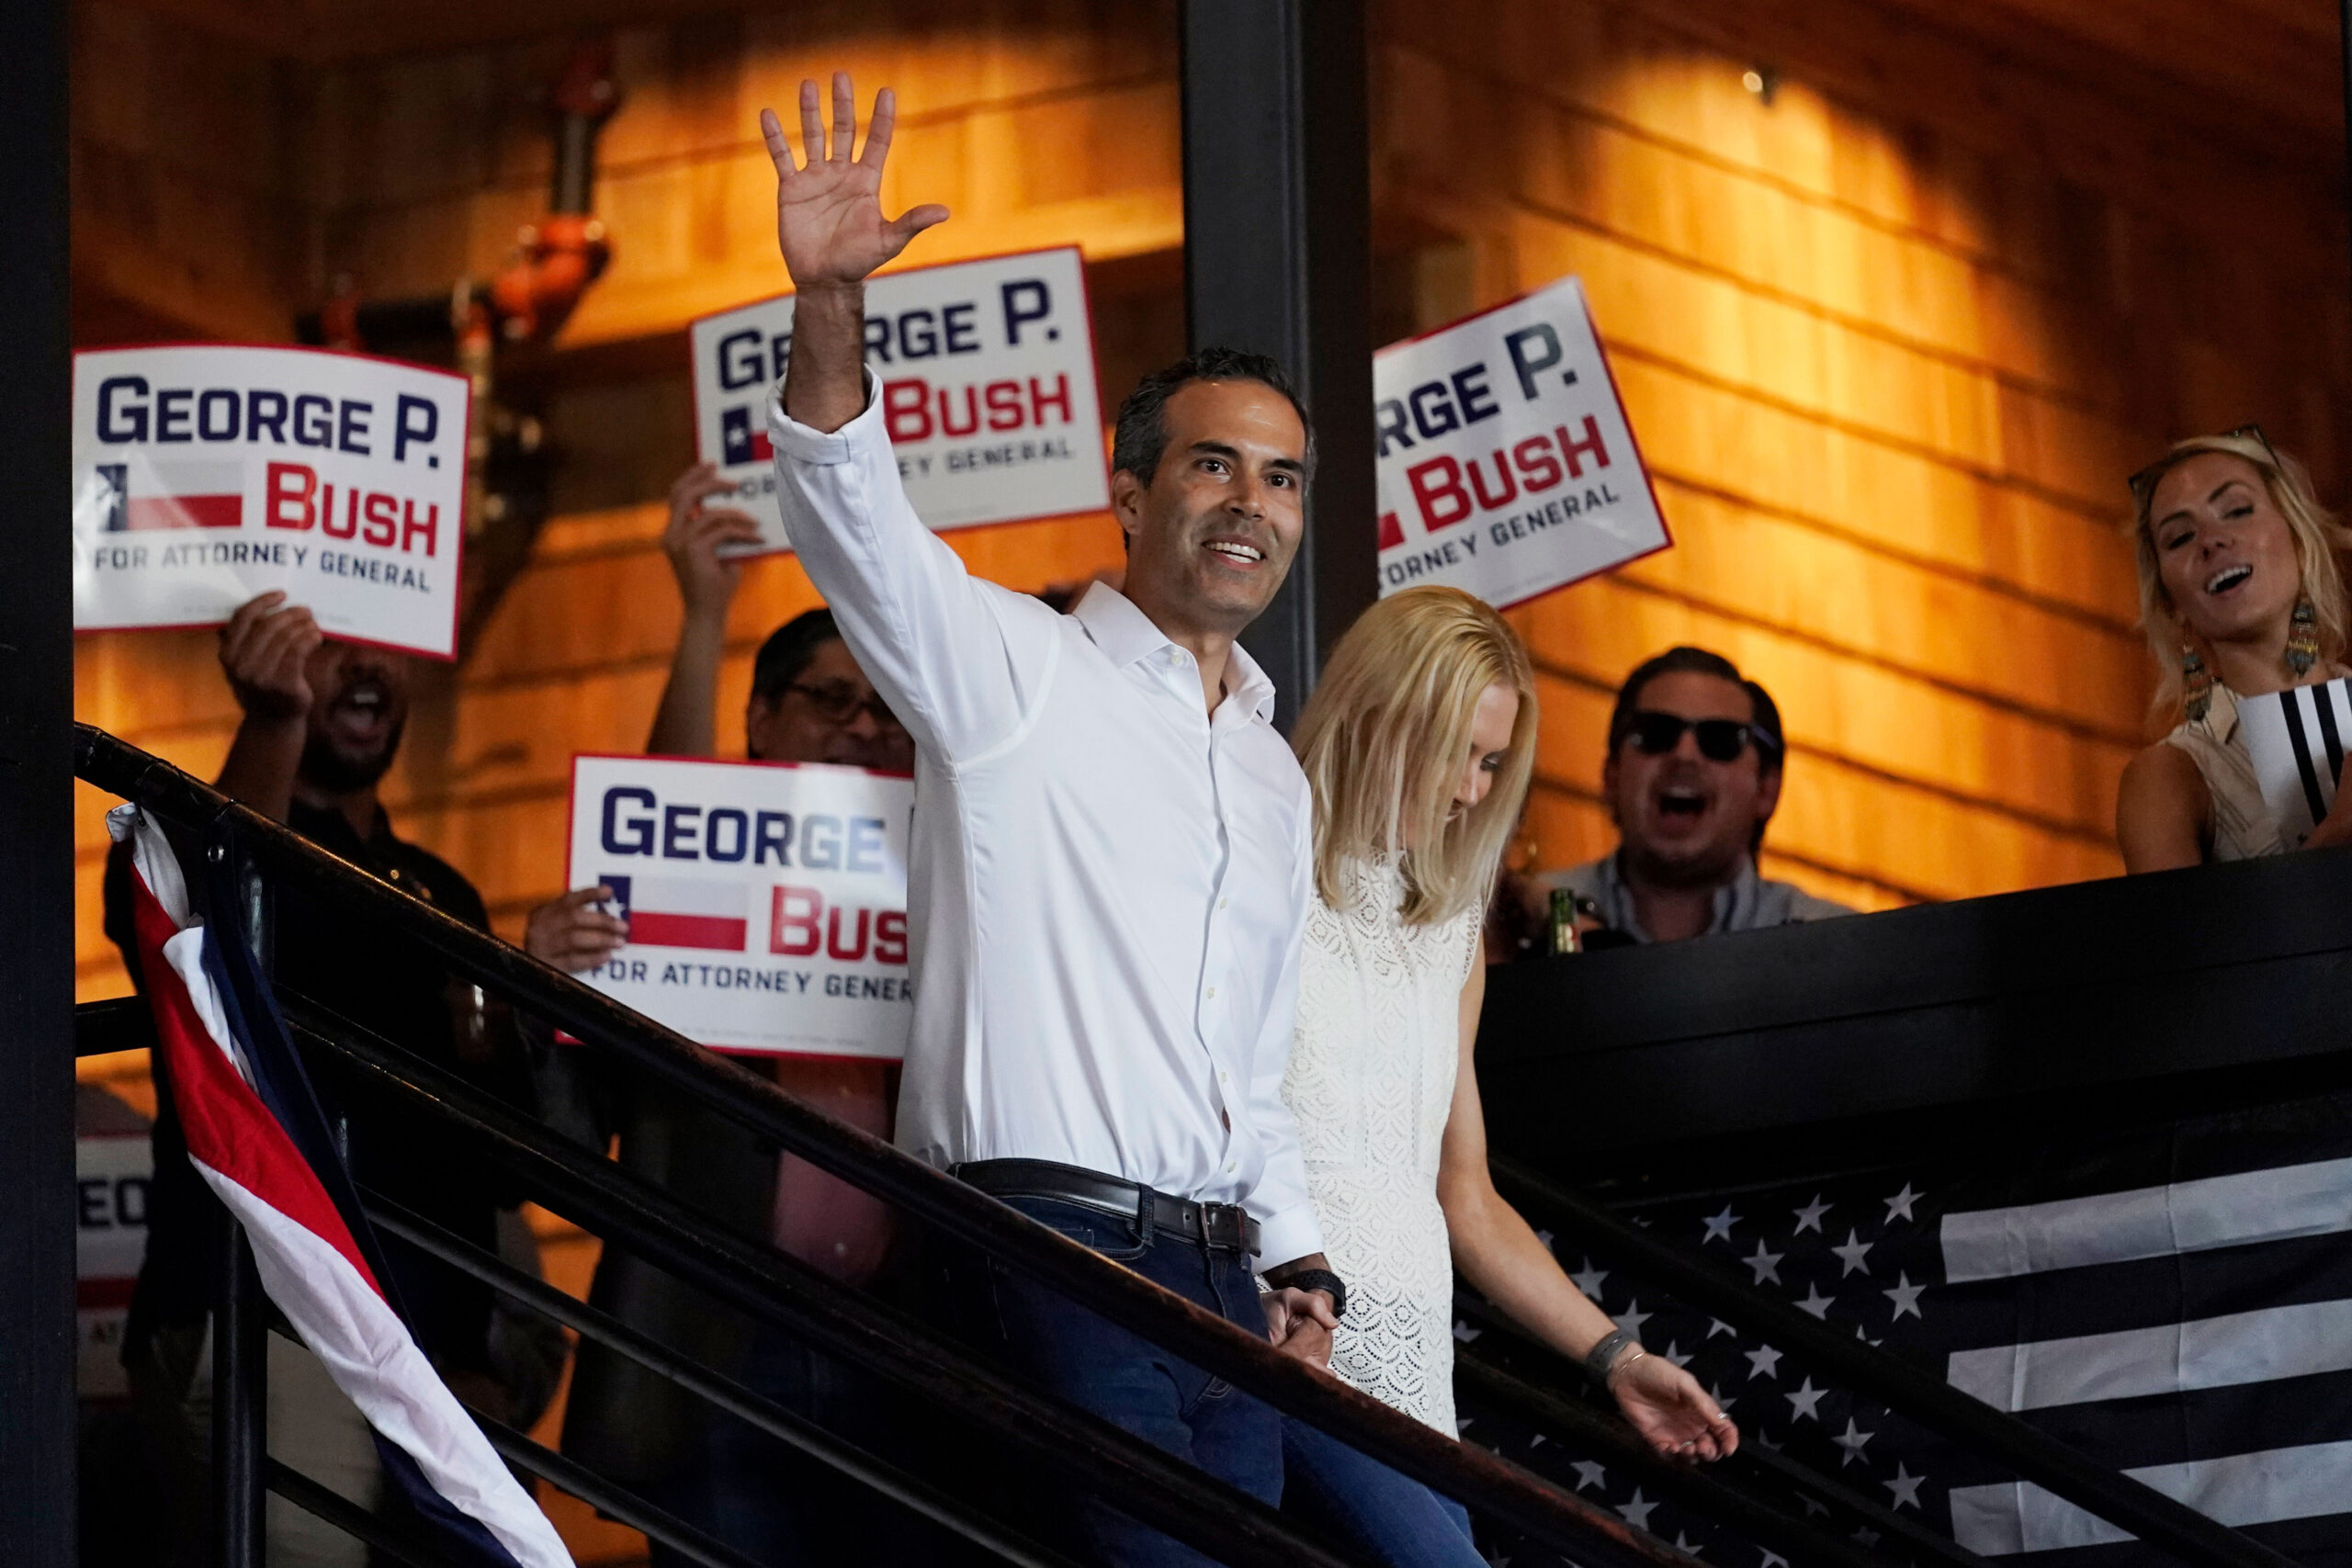 <i>Eric Gay/AP</i><br/>Texas Land Commissioner George P. Bush arrives for a kick-off rally with his wife Amanda to announced he will run for Texas Attorney General